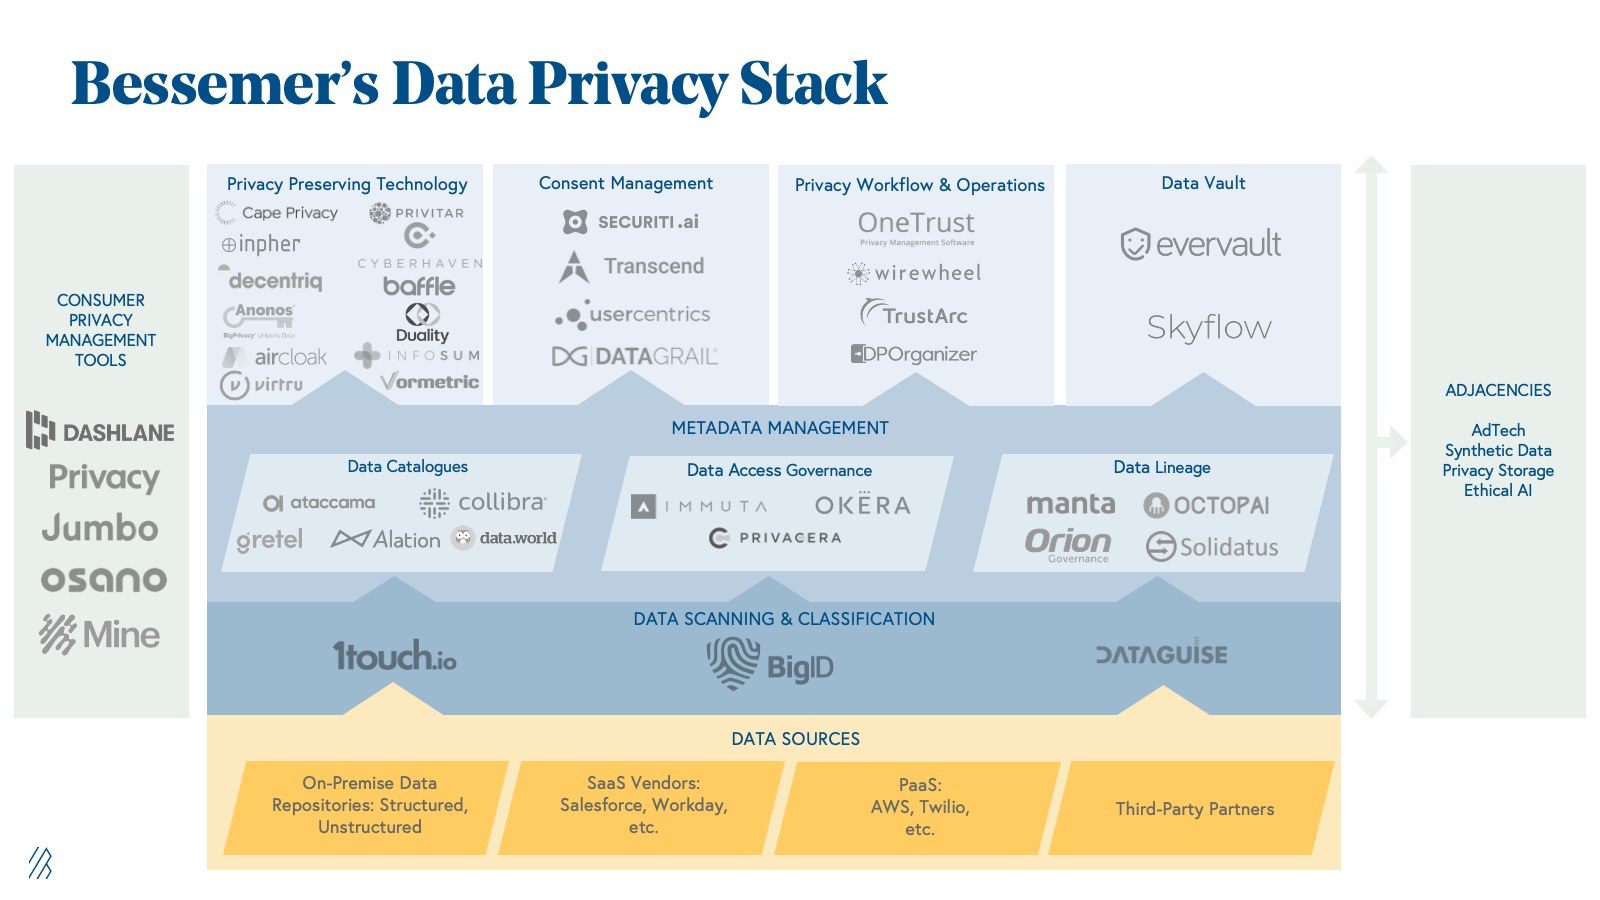 Bessemer's Data Privacy Technology Stack